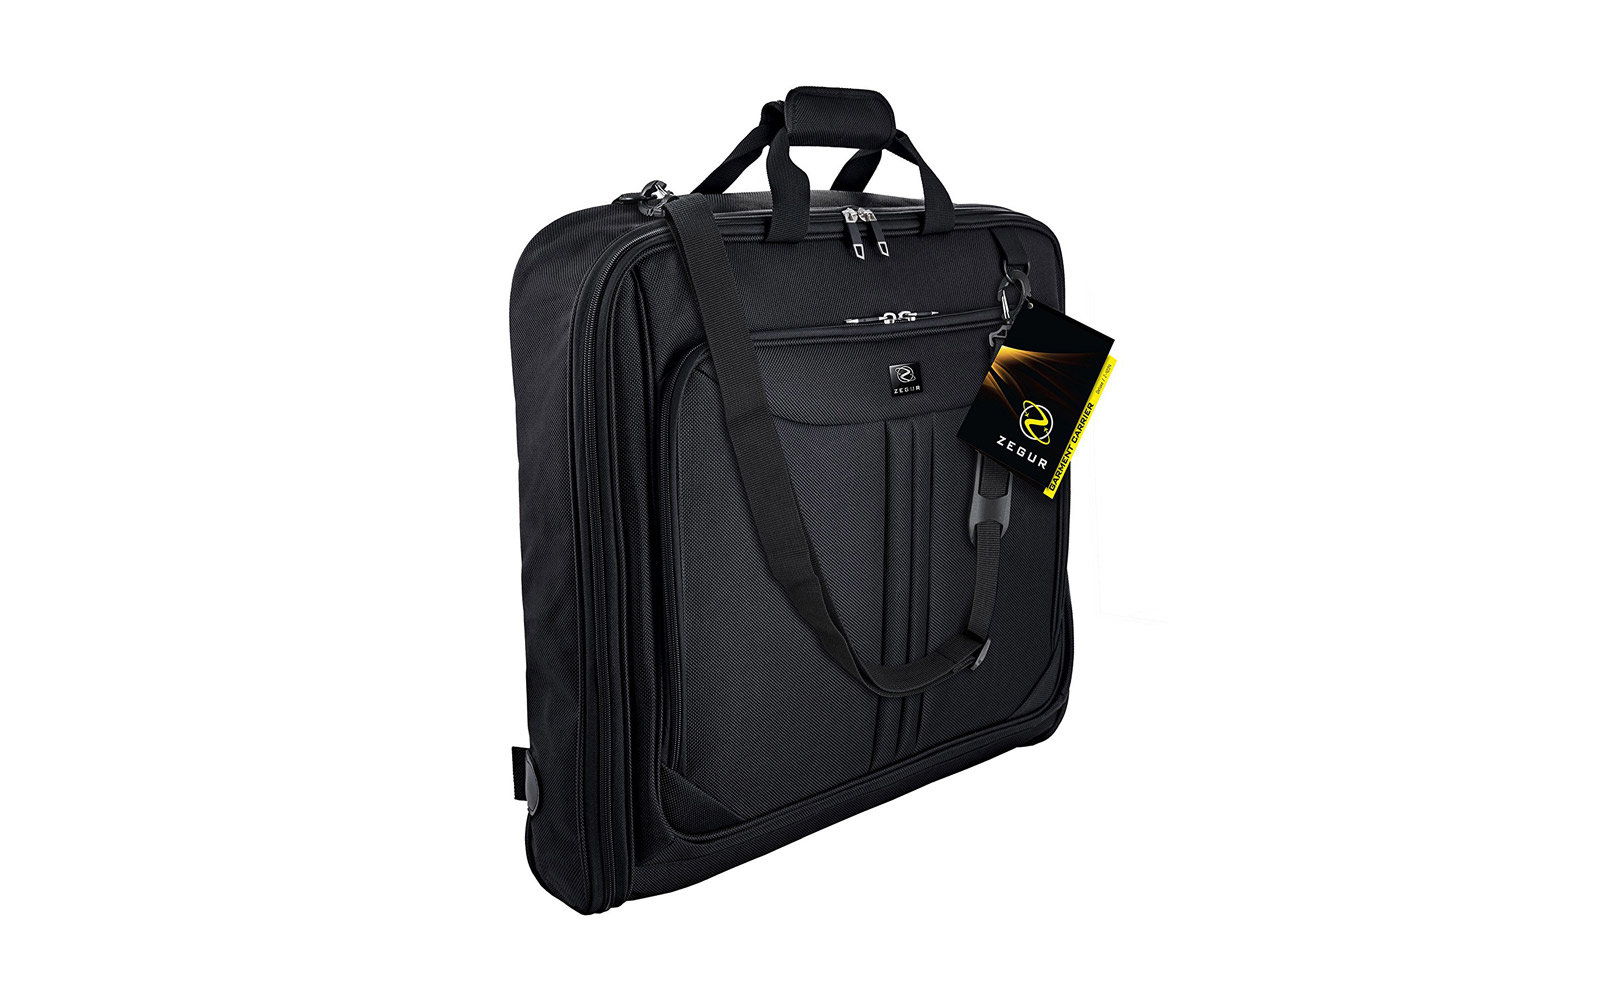 d5062dc069f7 The Best Garment Bags for Travel